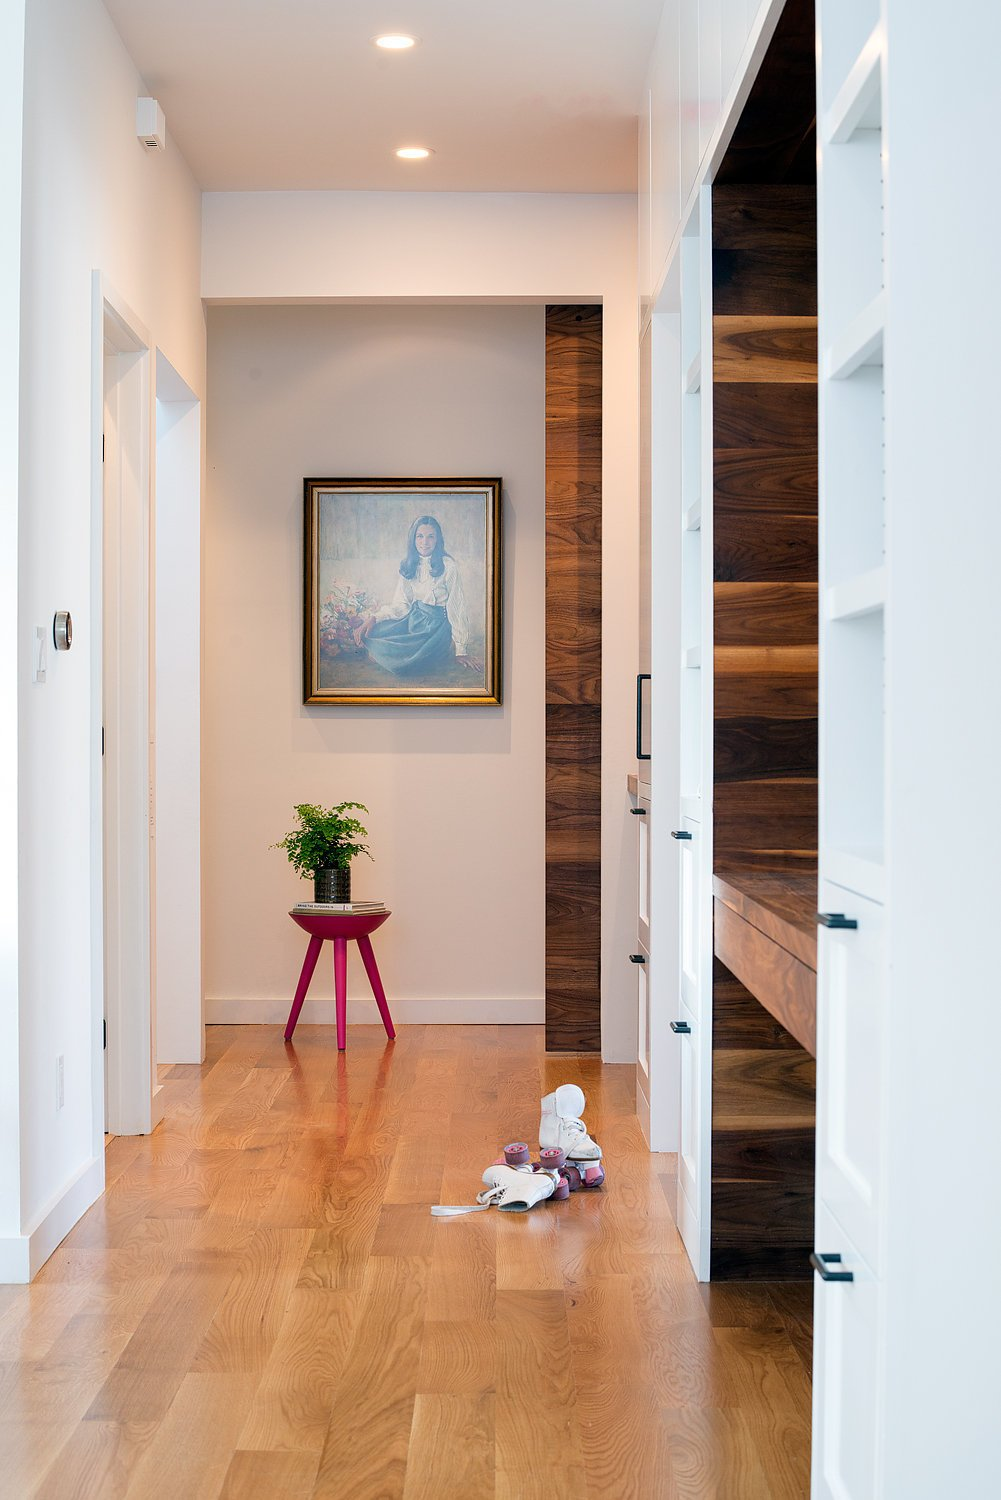 A full wall of built-in storage cabinets accented with walnut and oil-rubbed bronze hardware. A large walnut sliding barn door leads to the master suite and office areas.  Chenery Street Remodel by SF Design Build